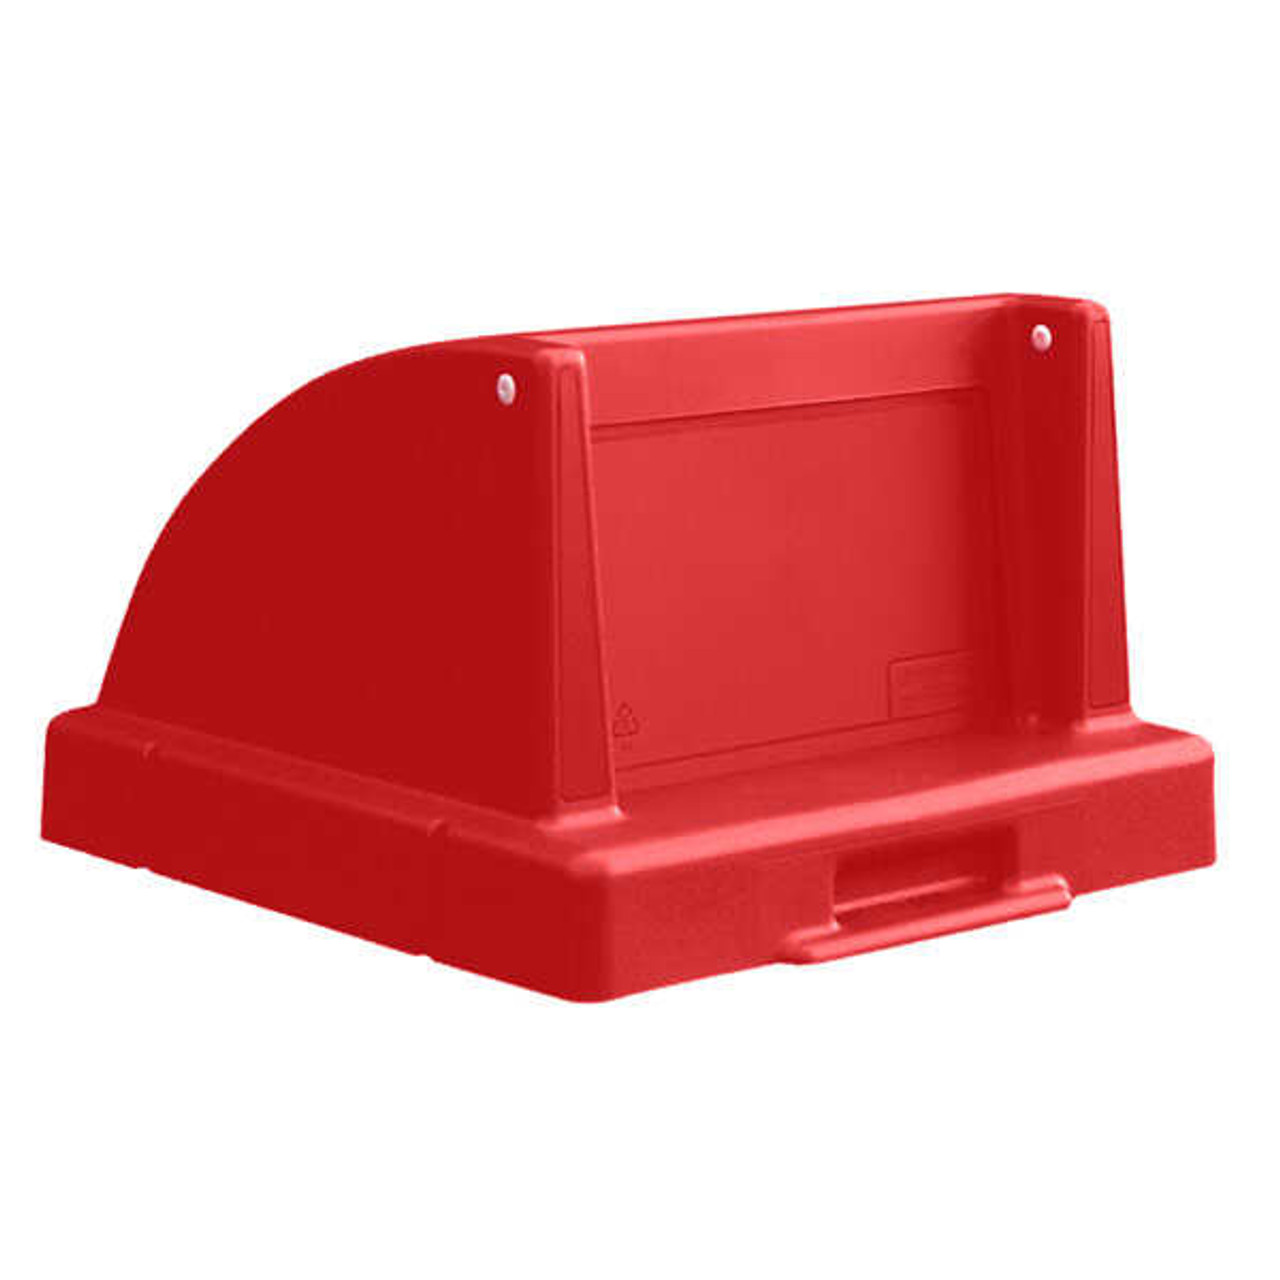 20.5 x 20.5 Push Door Plastic Lids TF1405QS for Square Trash Cans Red